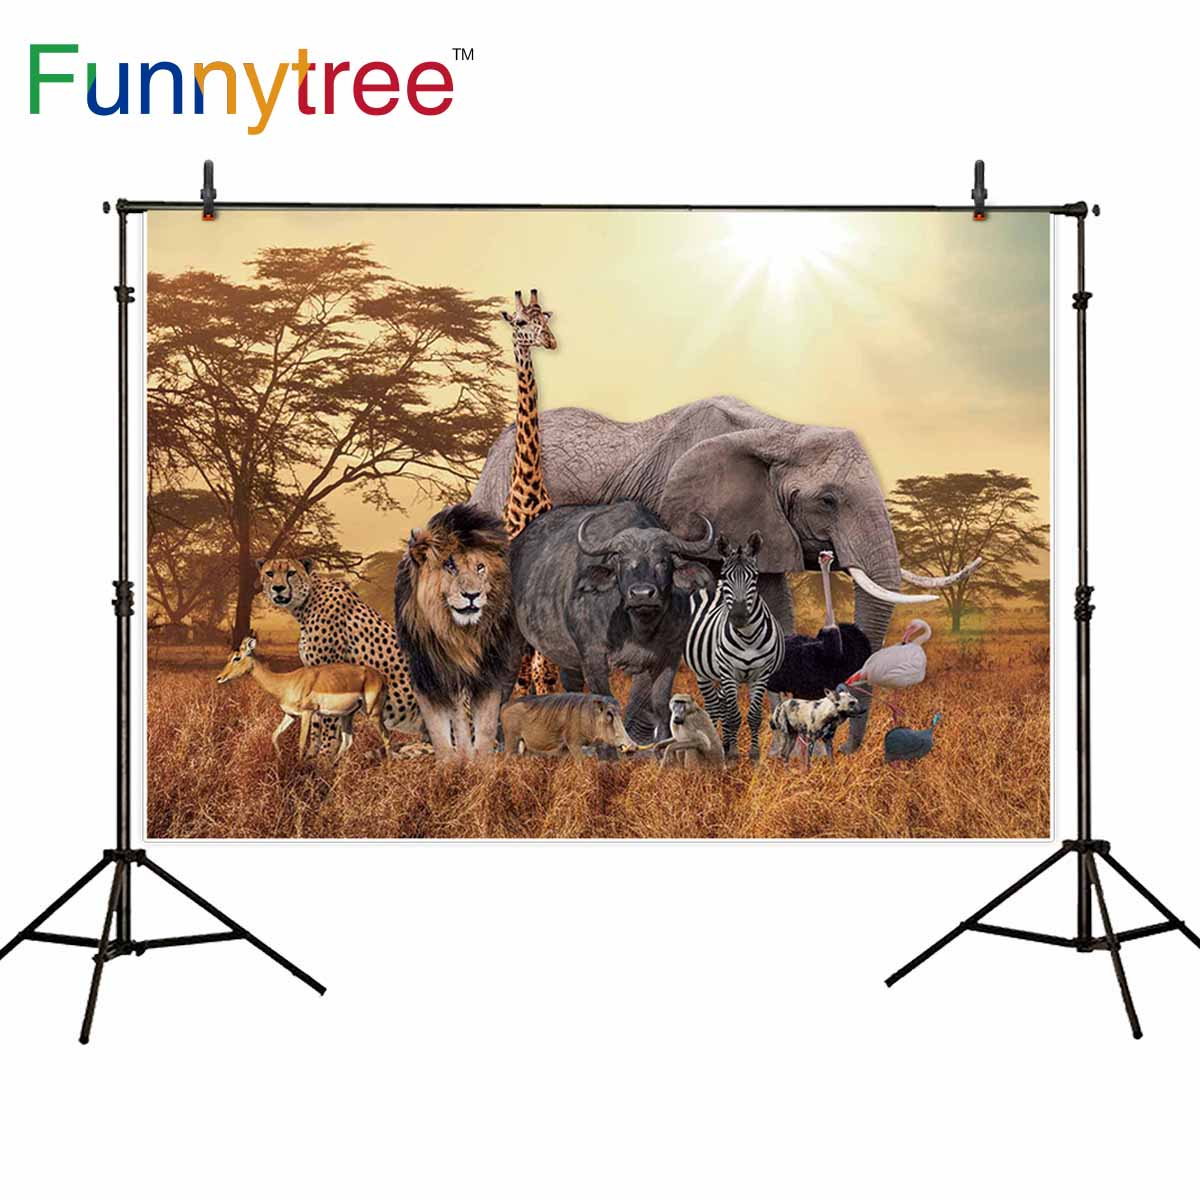 Tracee conibear / flickr / cc by 2.0 modern landscaping (also referred to as contemporary landscaping) is. Allenjoy Safari Wild Animal Backdrop Landscape African Jungle Rainforest Background Lion Birthday Photography Photo Studio Props Big Discount 7b7180 Goteborgsaventyrscenter